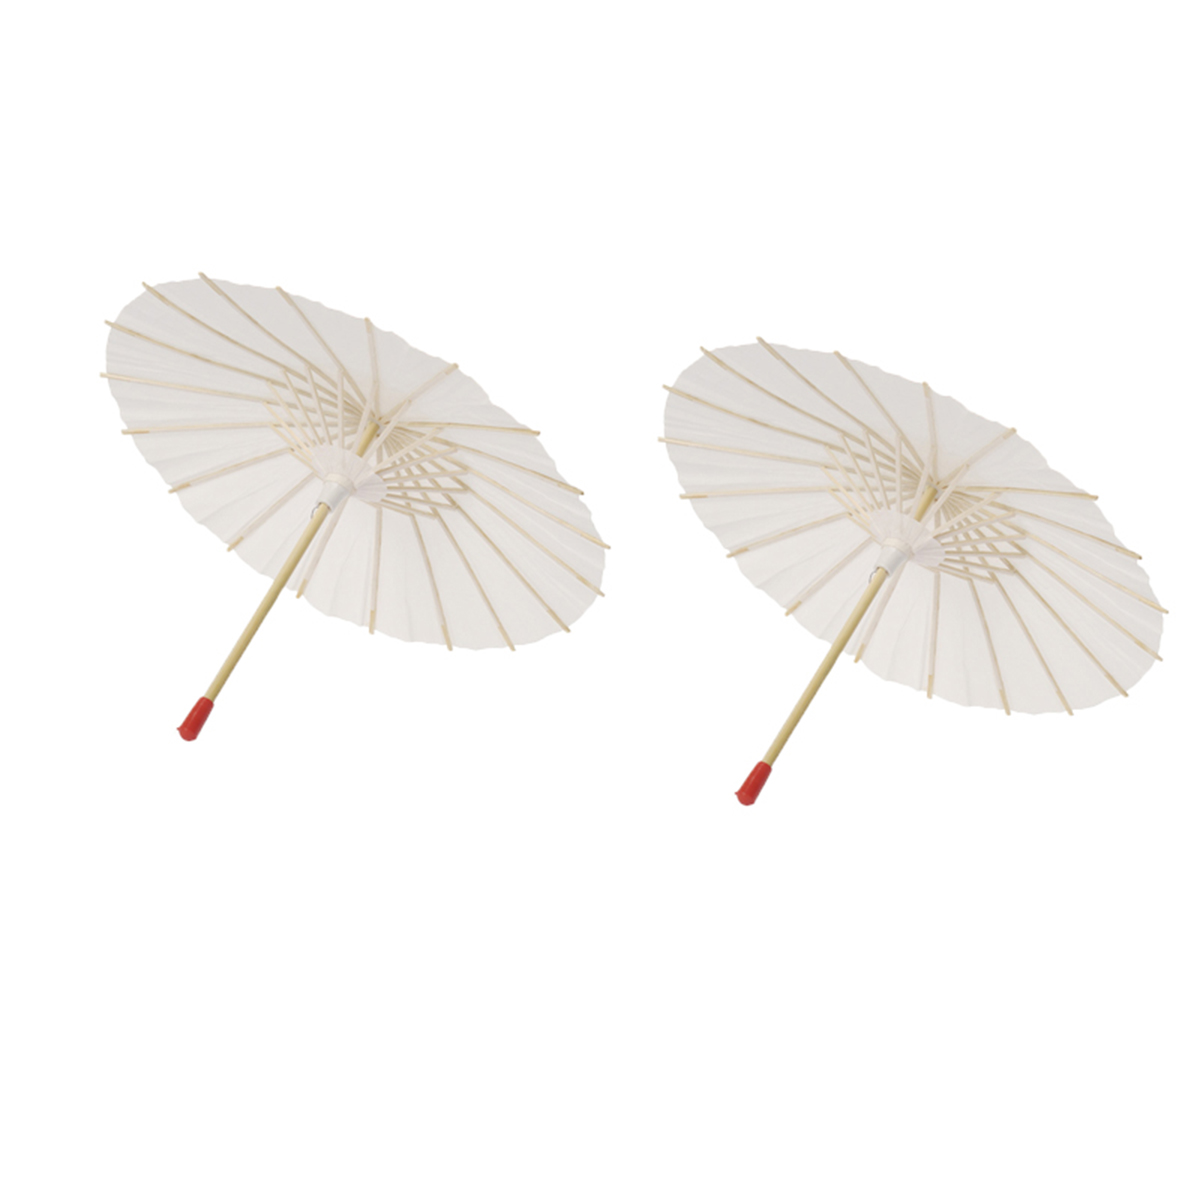 2Pcs White Paper Parasol Craft Decorative Chinese Japanese Paper Umbrella For Baby Shower Anniversary Wedding Birthday